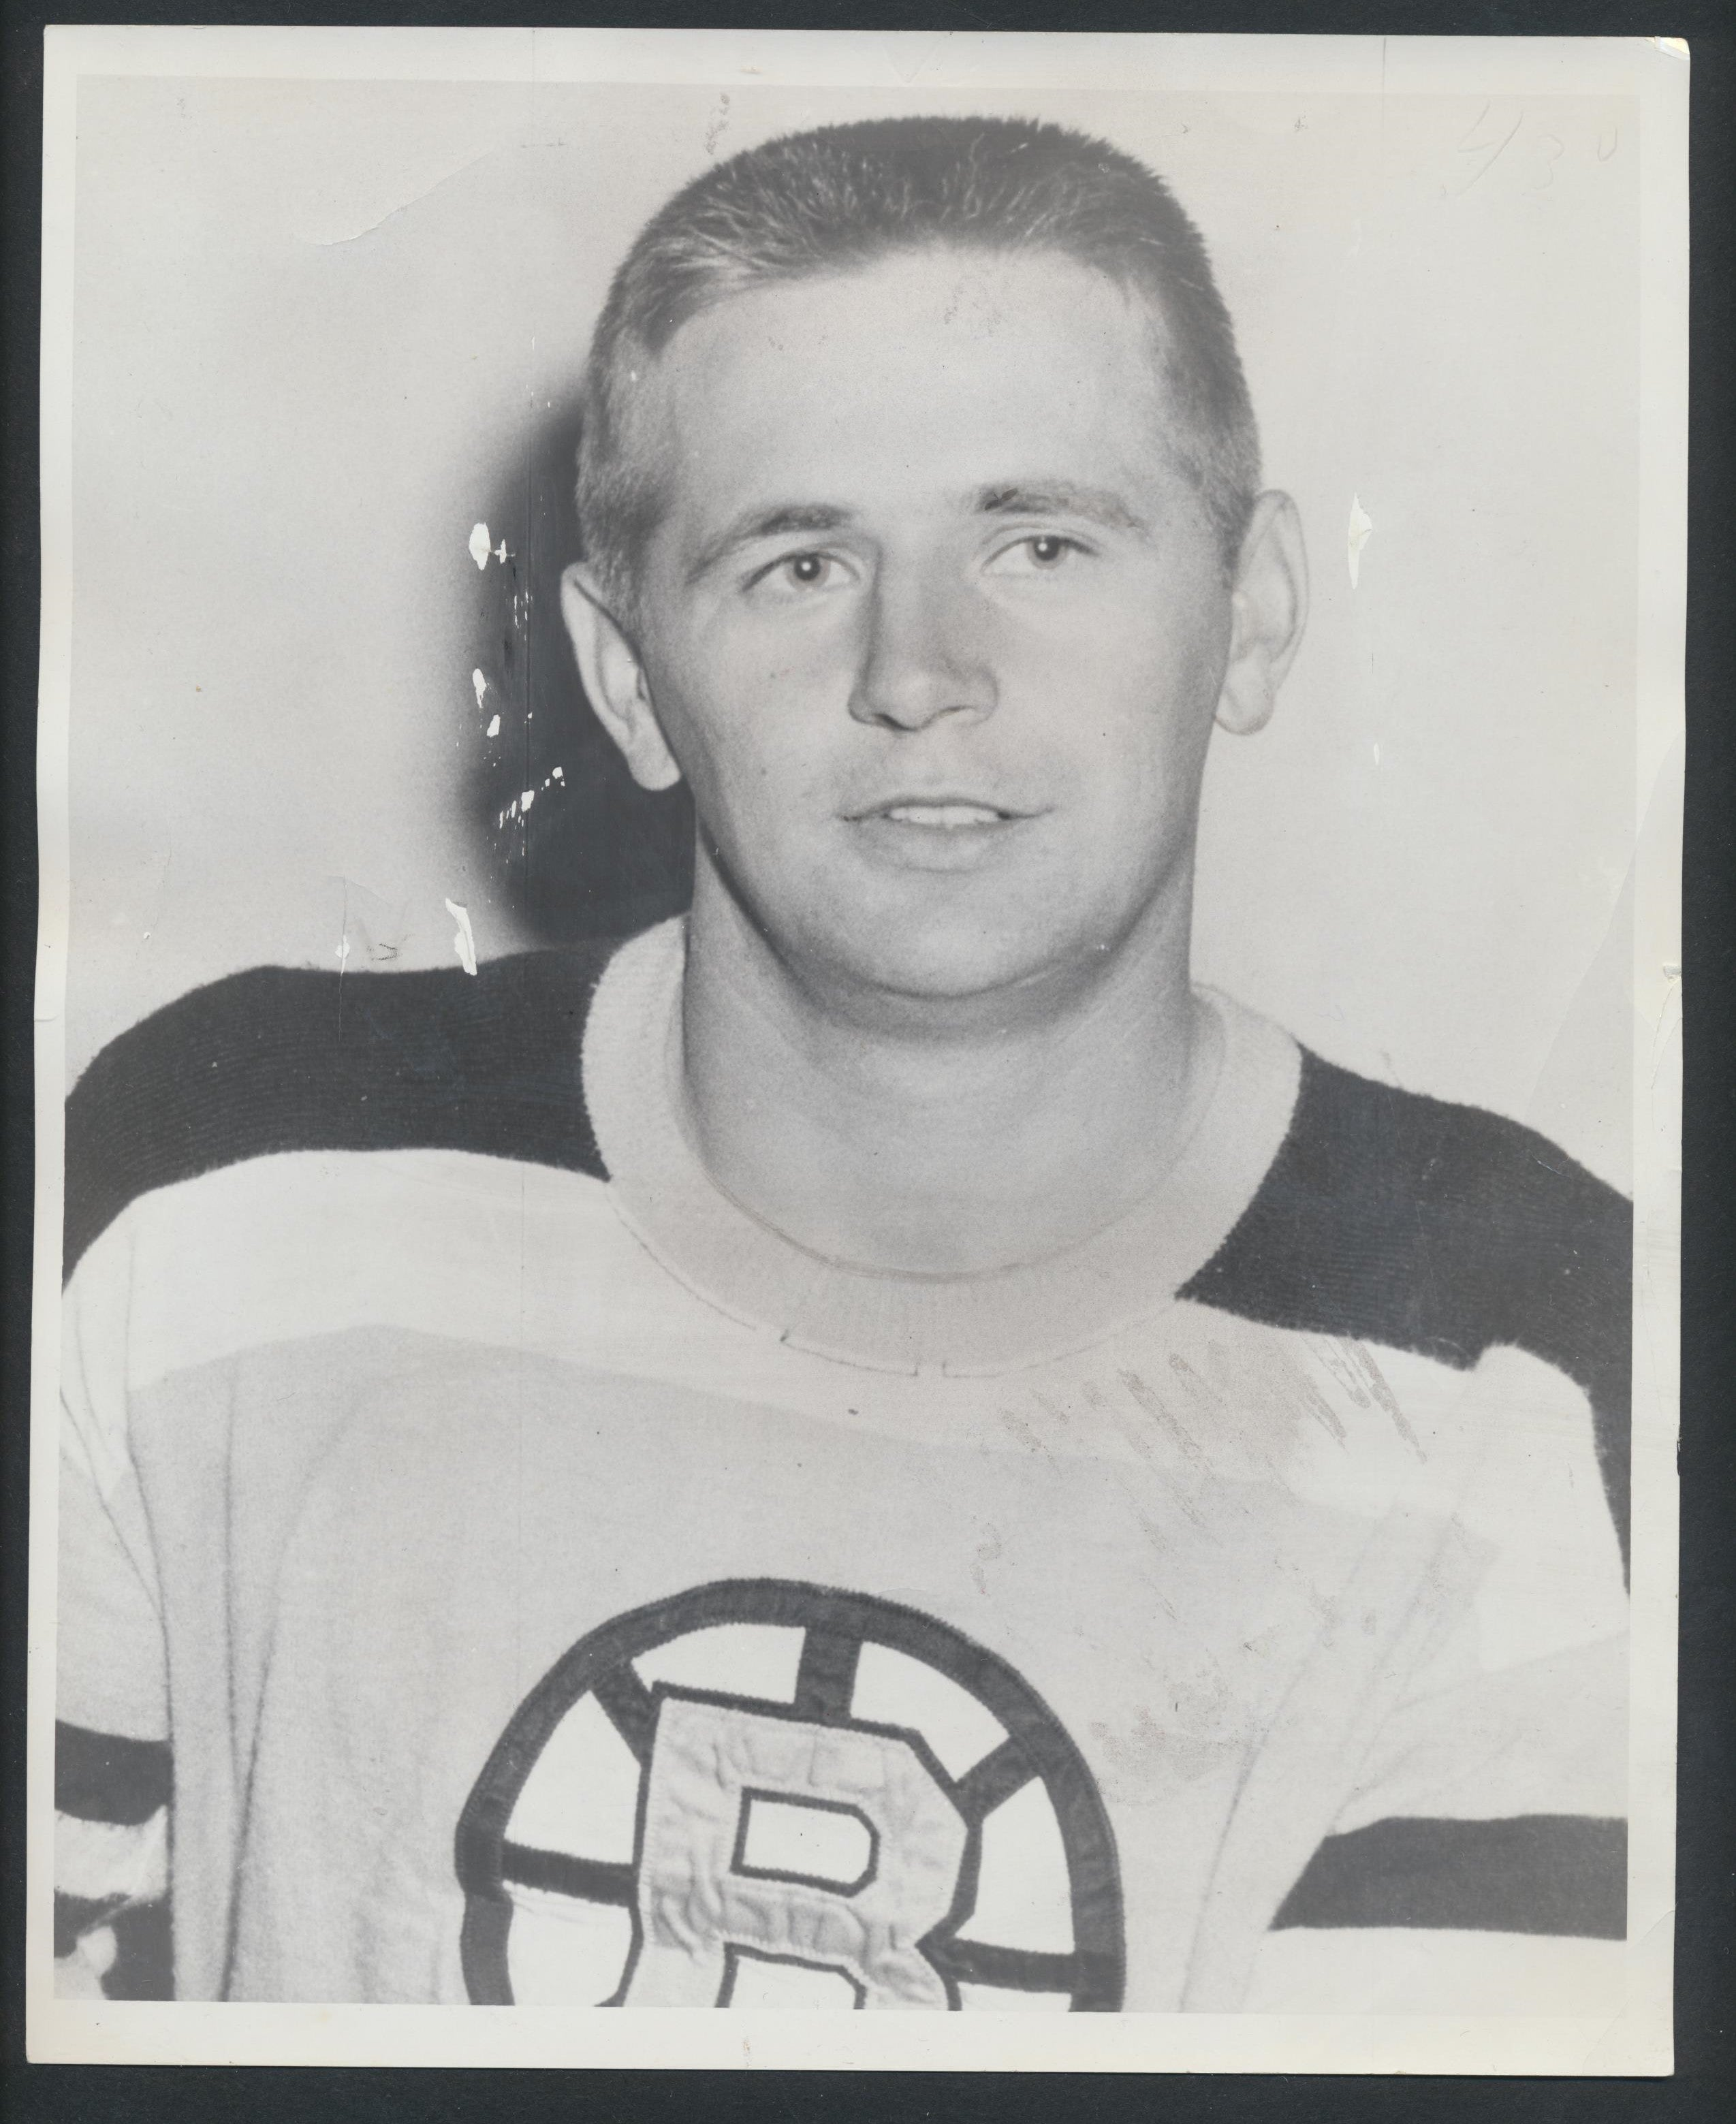 Original Stan Baluik -Boston Bruins Press/Wire Photo 1959-60  Vintage NHL Hockey Pic  News Archives